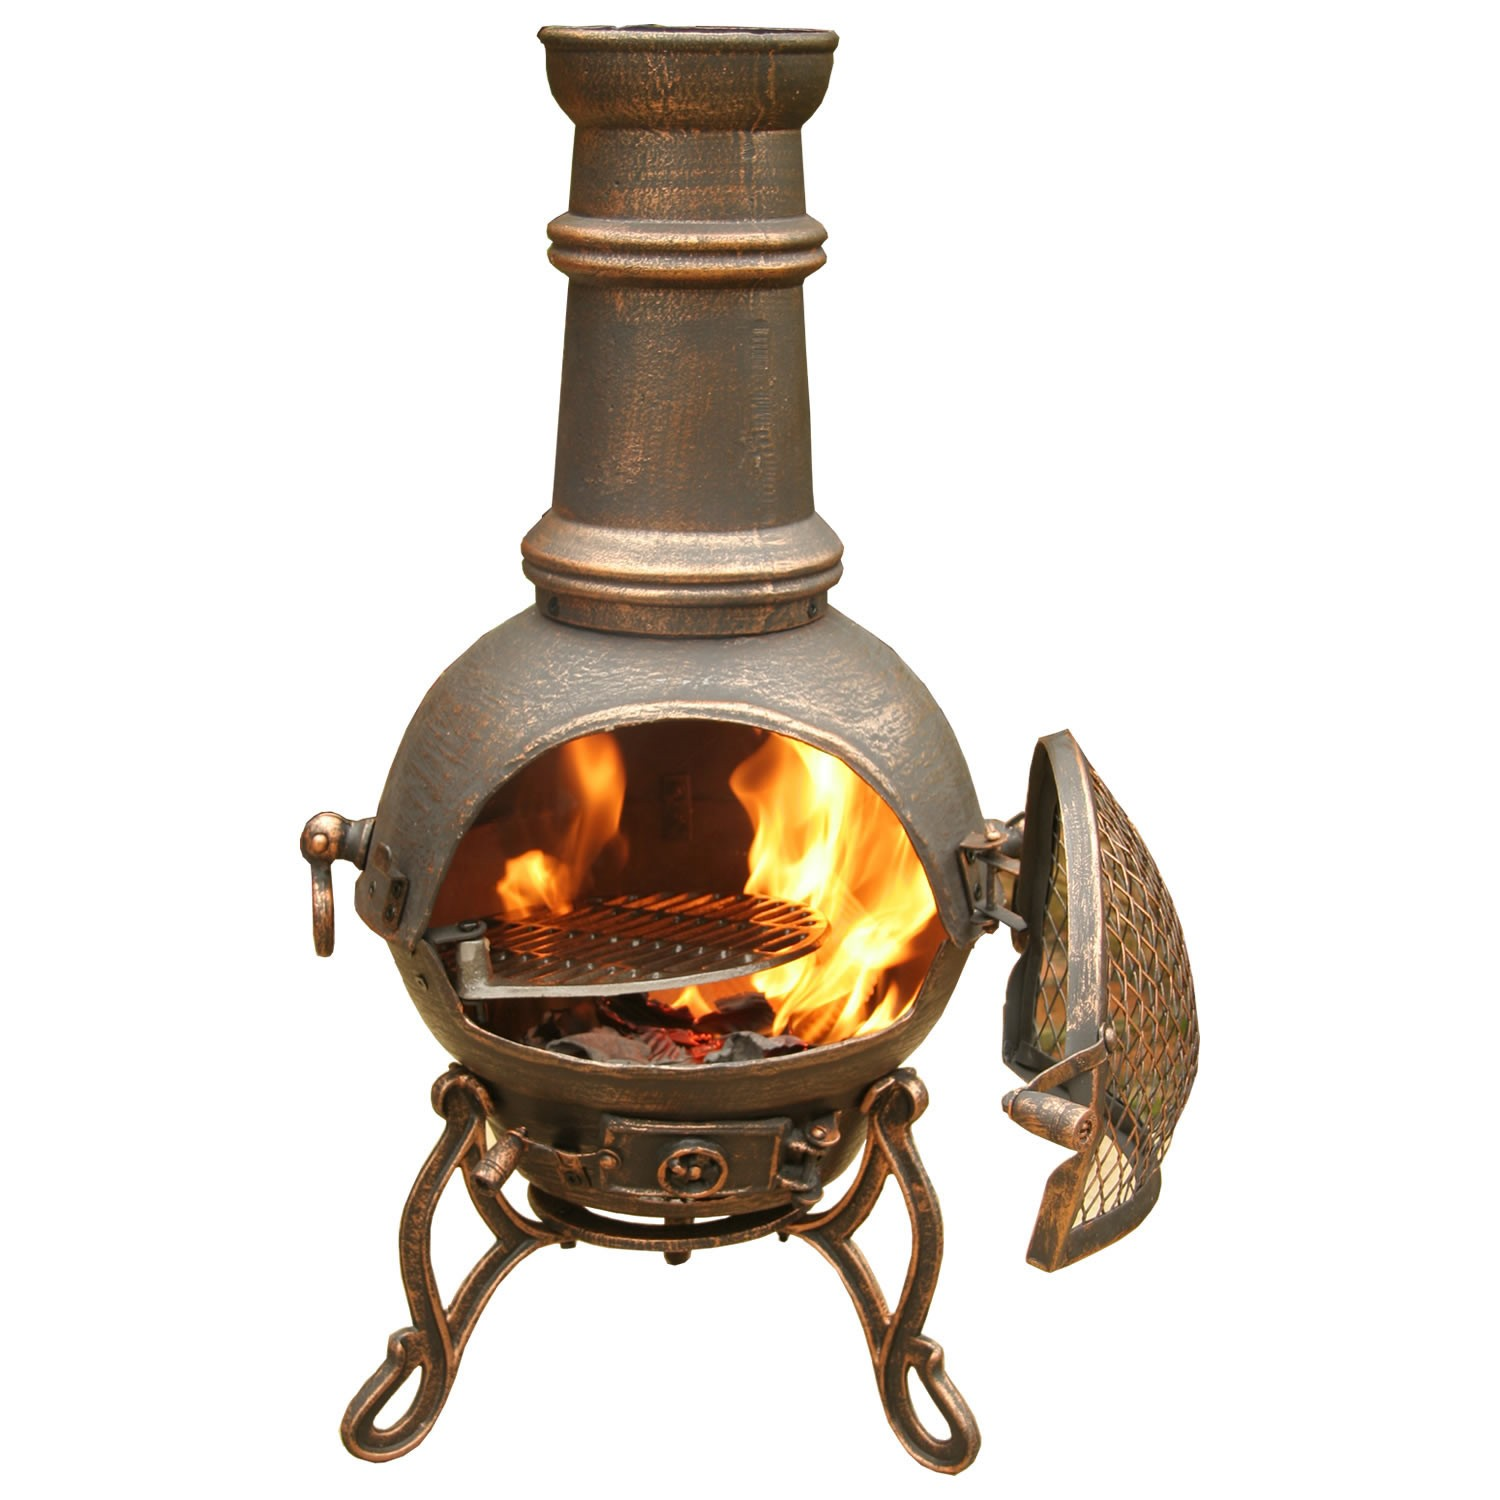 Chiminea Outdoor Fireplace in unique design for patio furniture ideas